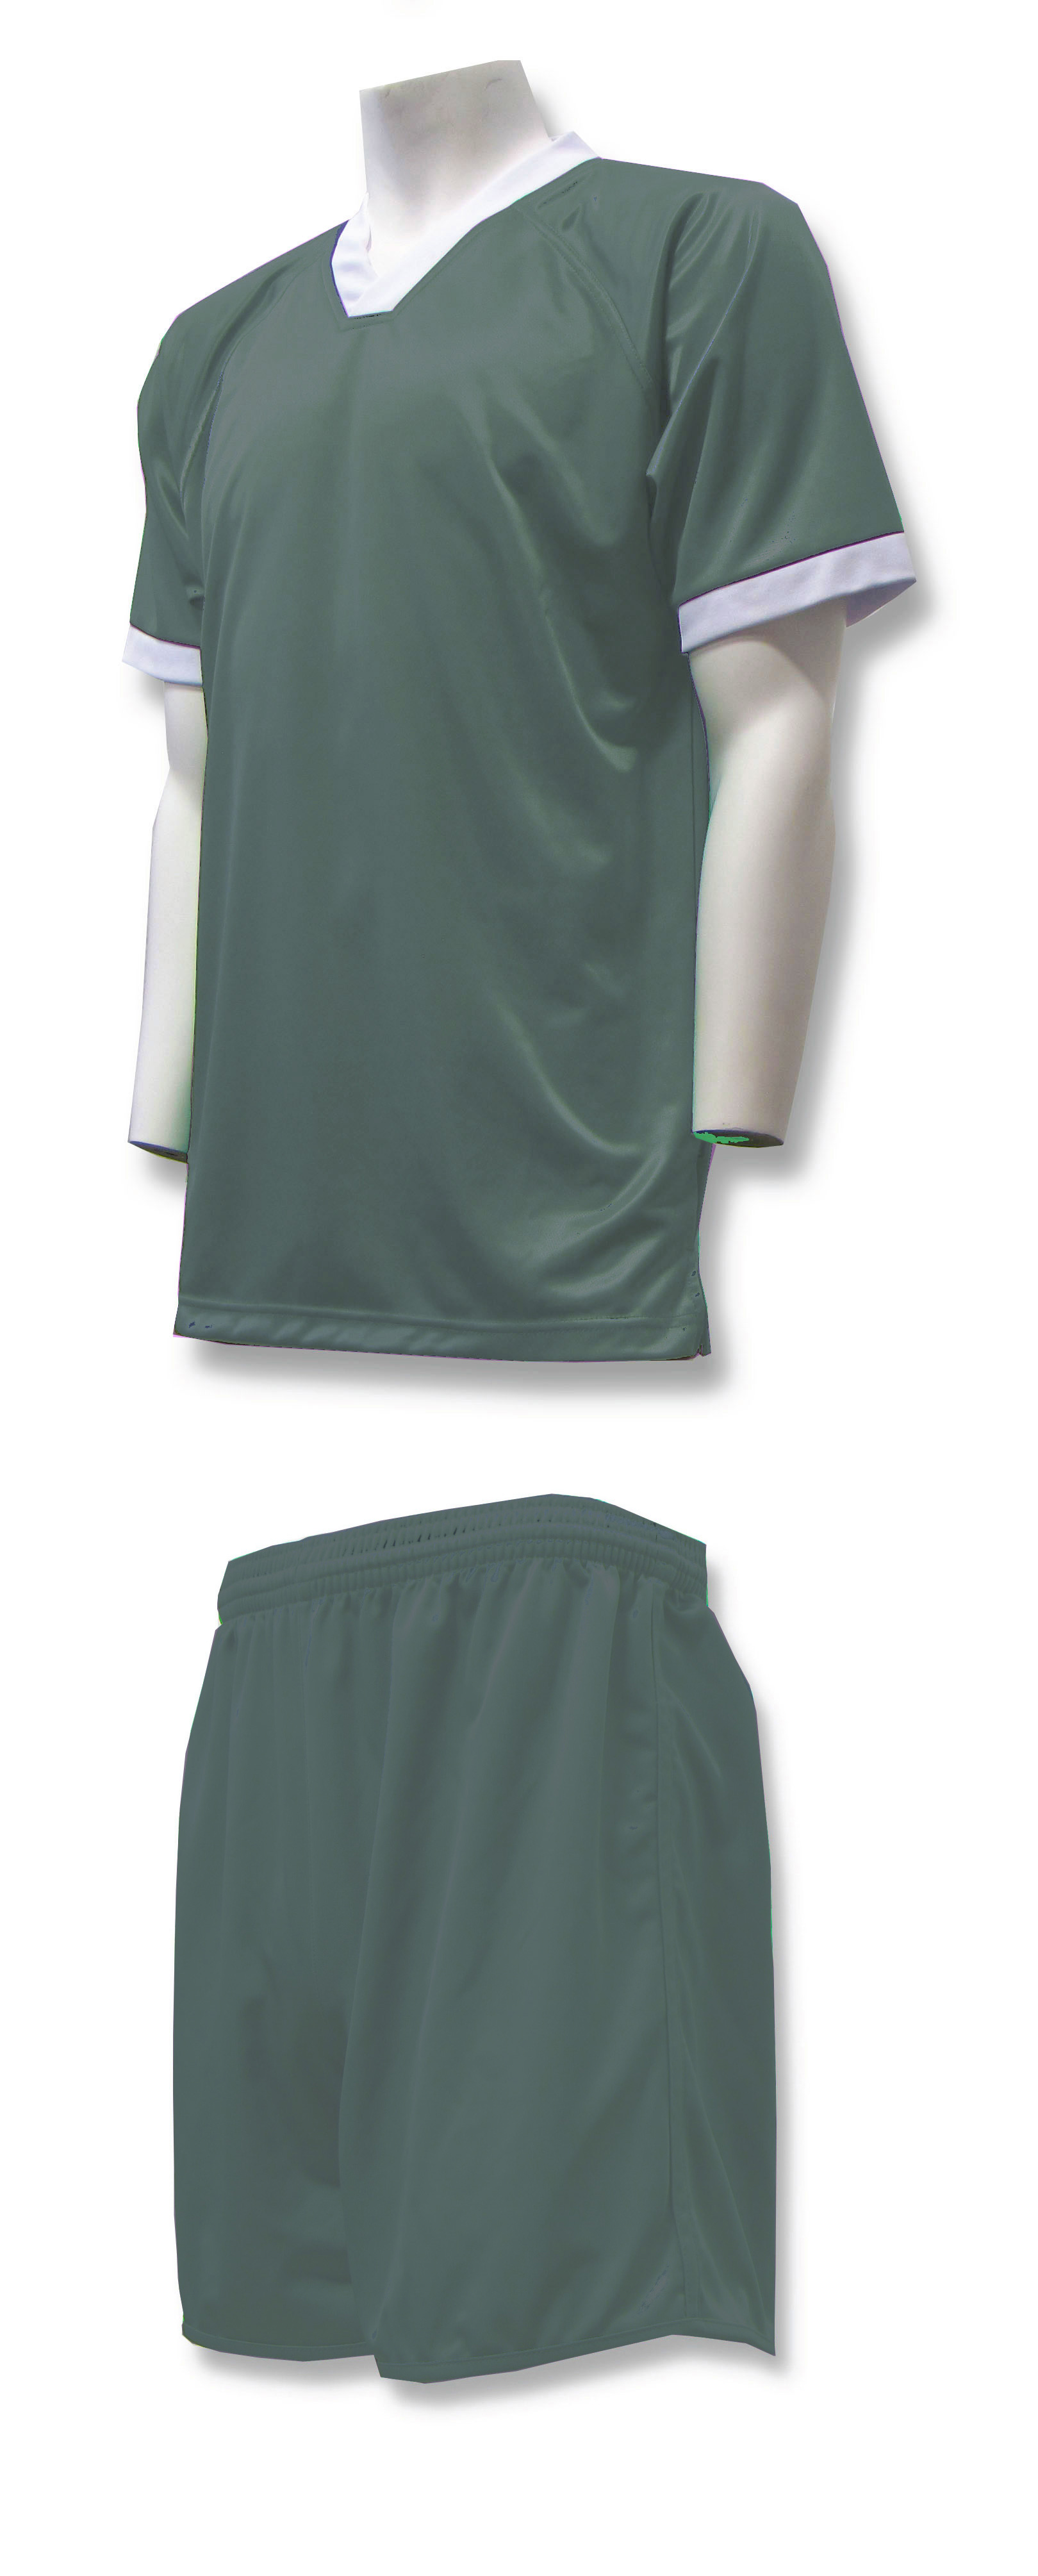 Forza soccer uniform kit in forest by Code Four Athletics